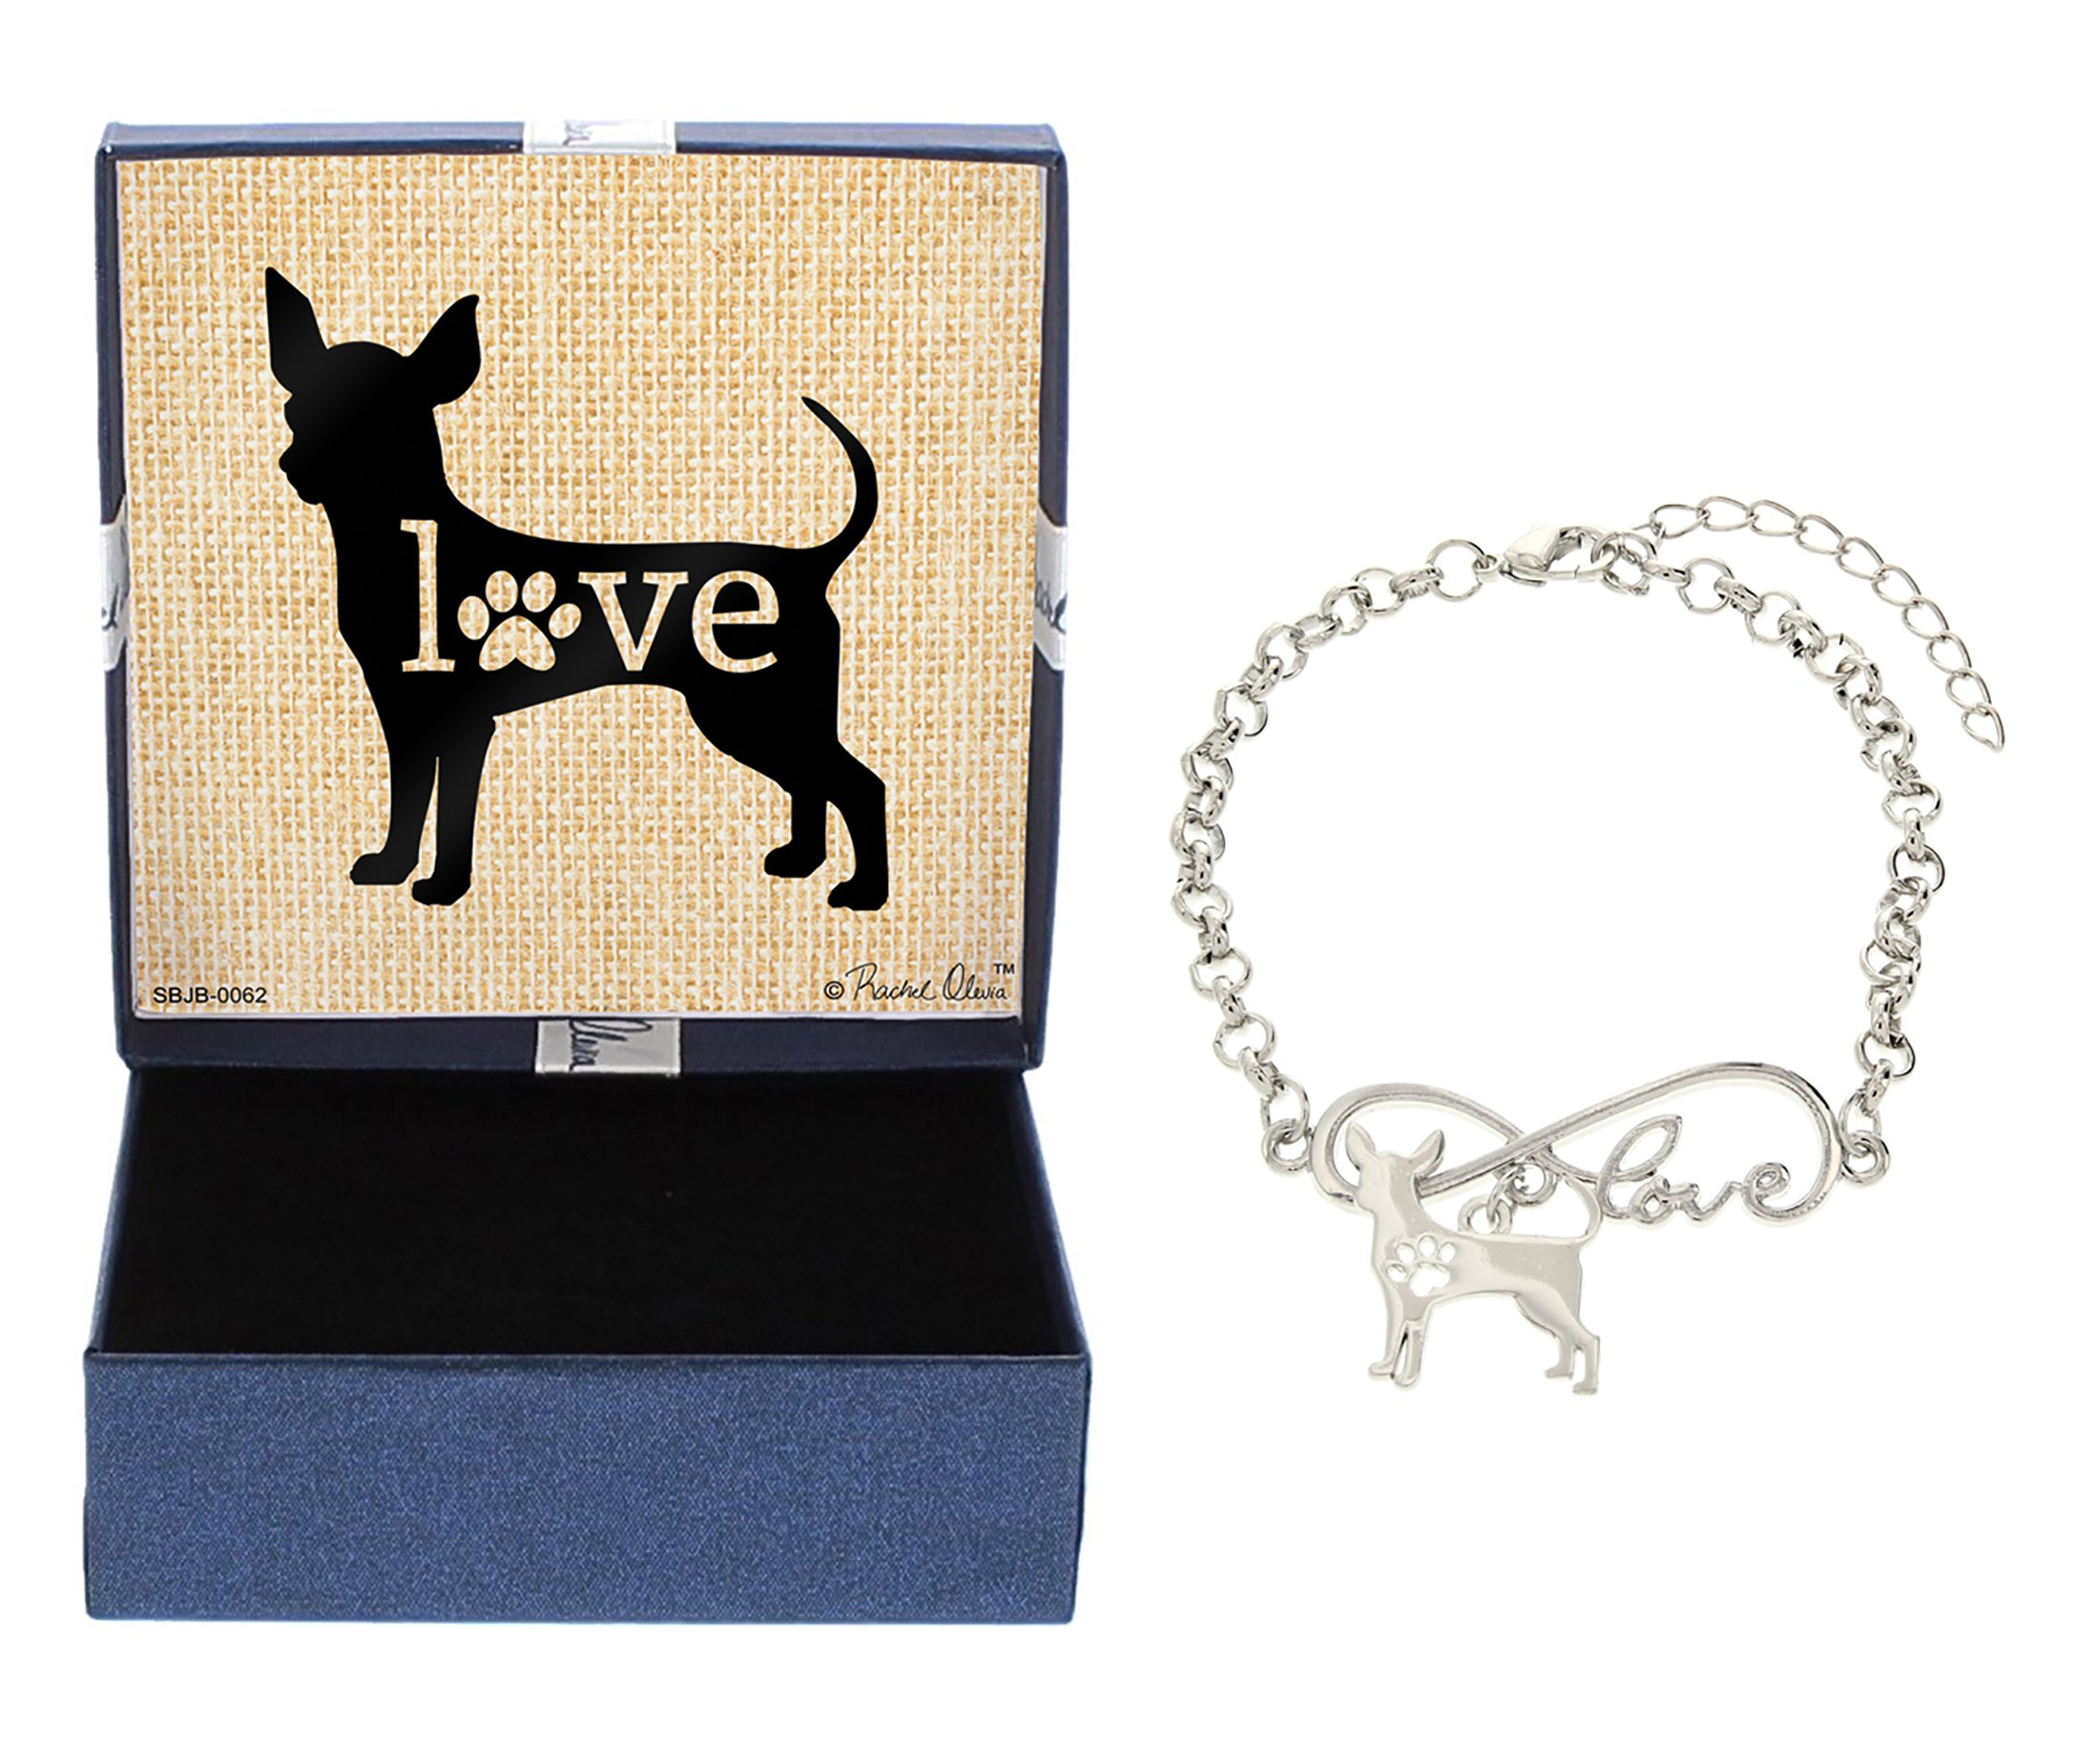 Mother's Day Gifts Love Chihuahua Bracelet Gift Love Charm Dog Breed Silhouette Charm Bracelet Silver-Tone Bracelet Gift for Chihuahua Owner Jewelry Box Mothers Day Gift Idea For A Rescue Dog Mom